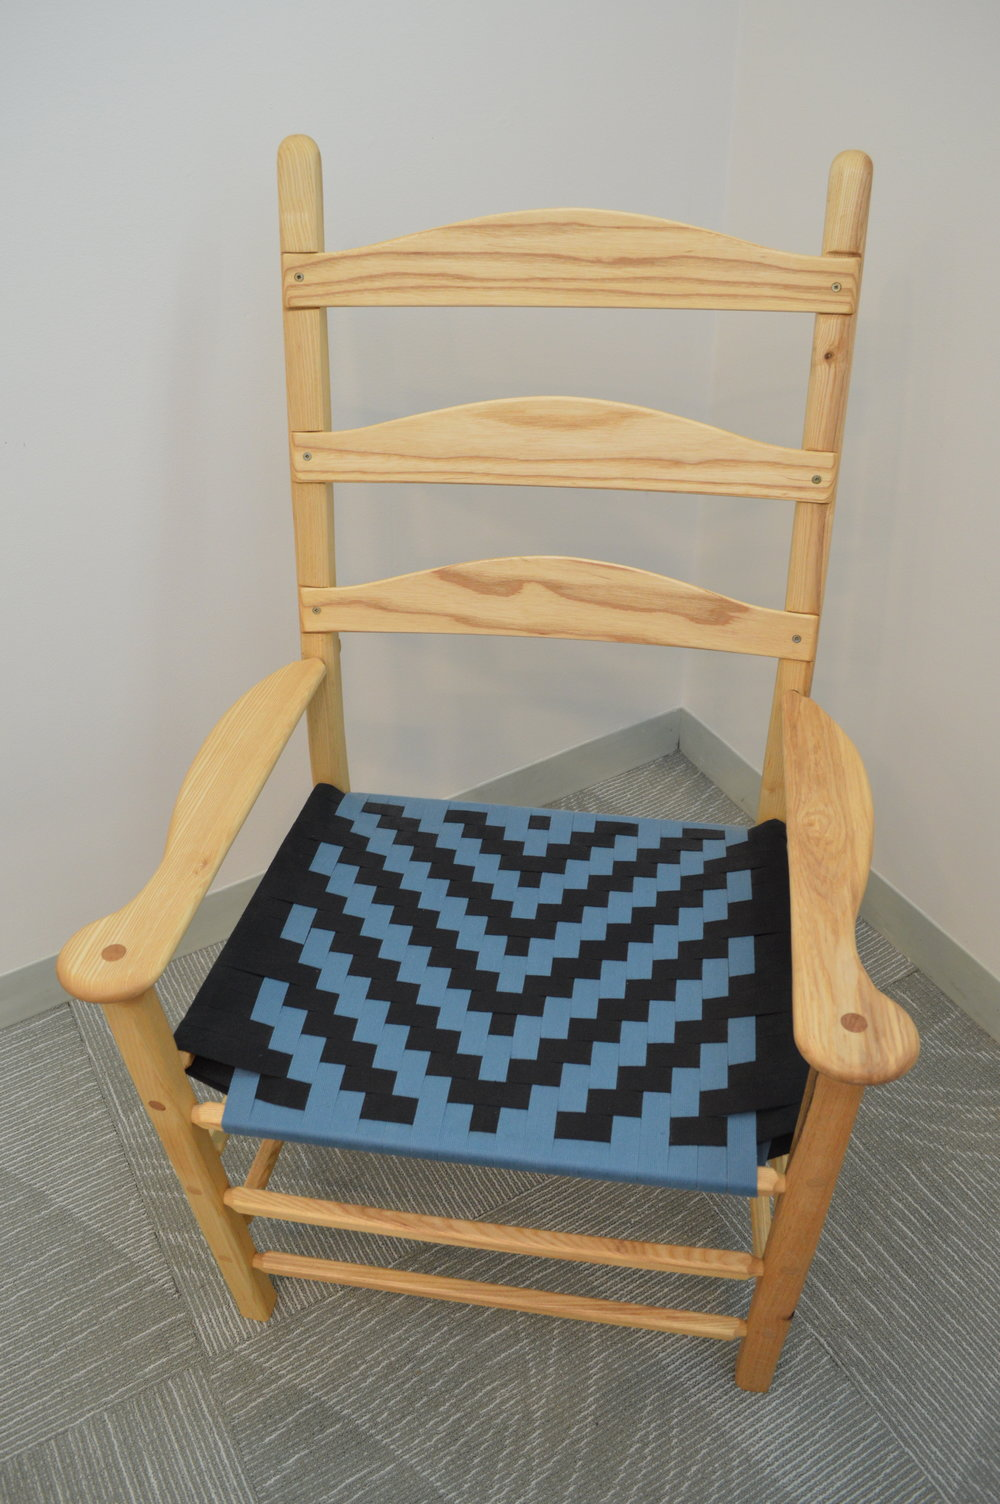 Elder's Chair (woodworking - 19'' x 23'' x 44'') (Part One) - James McCarey